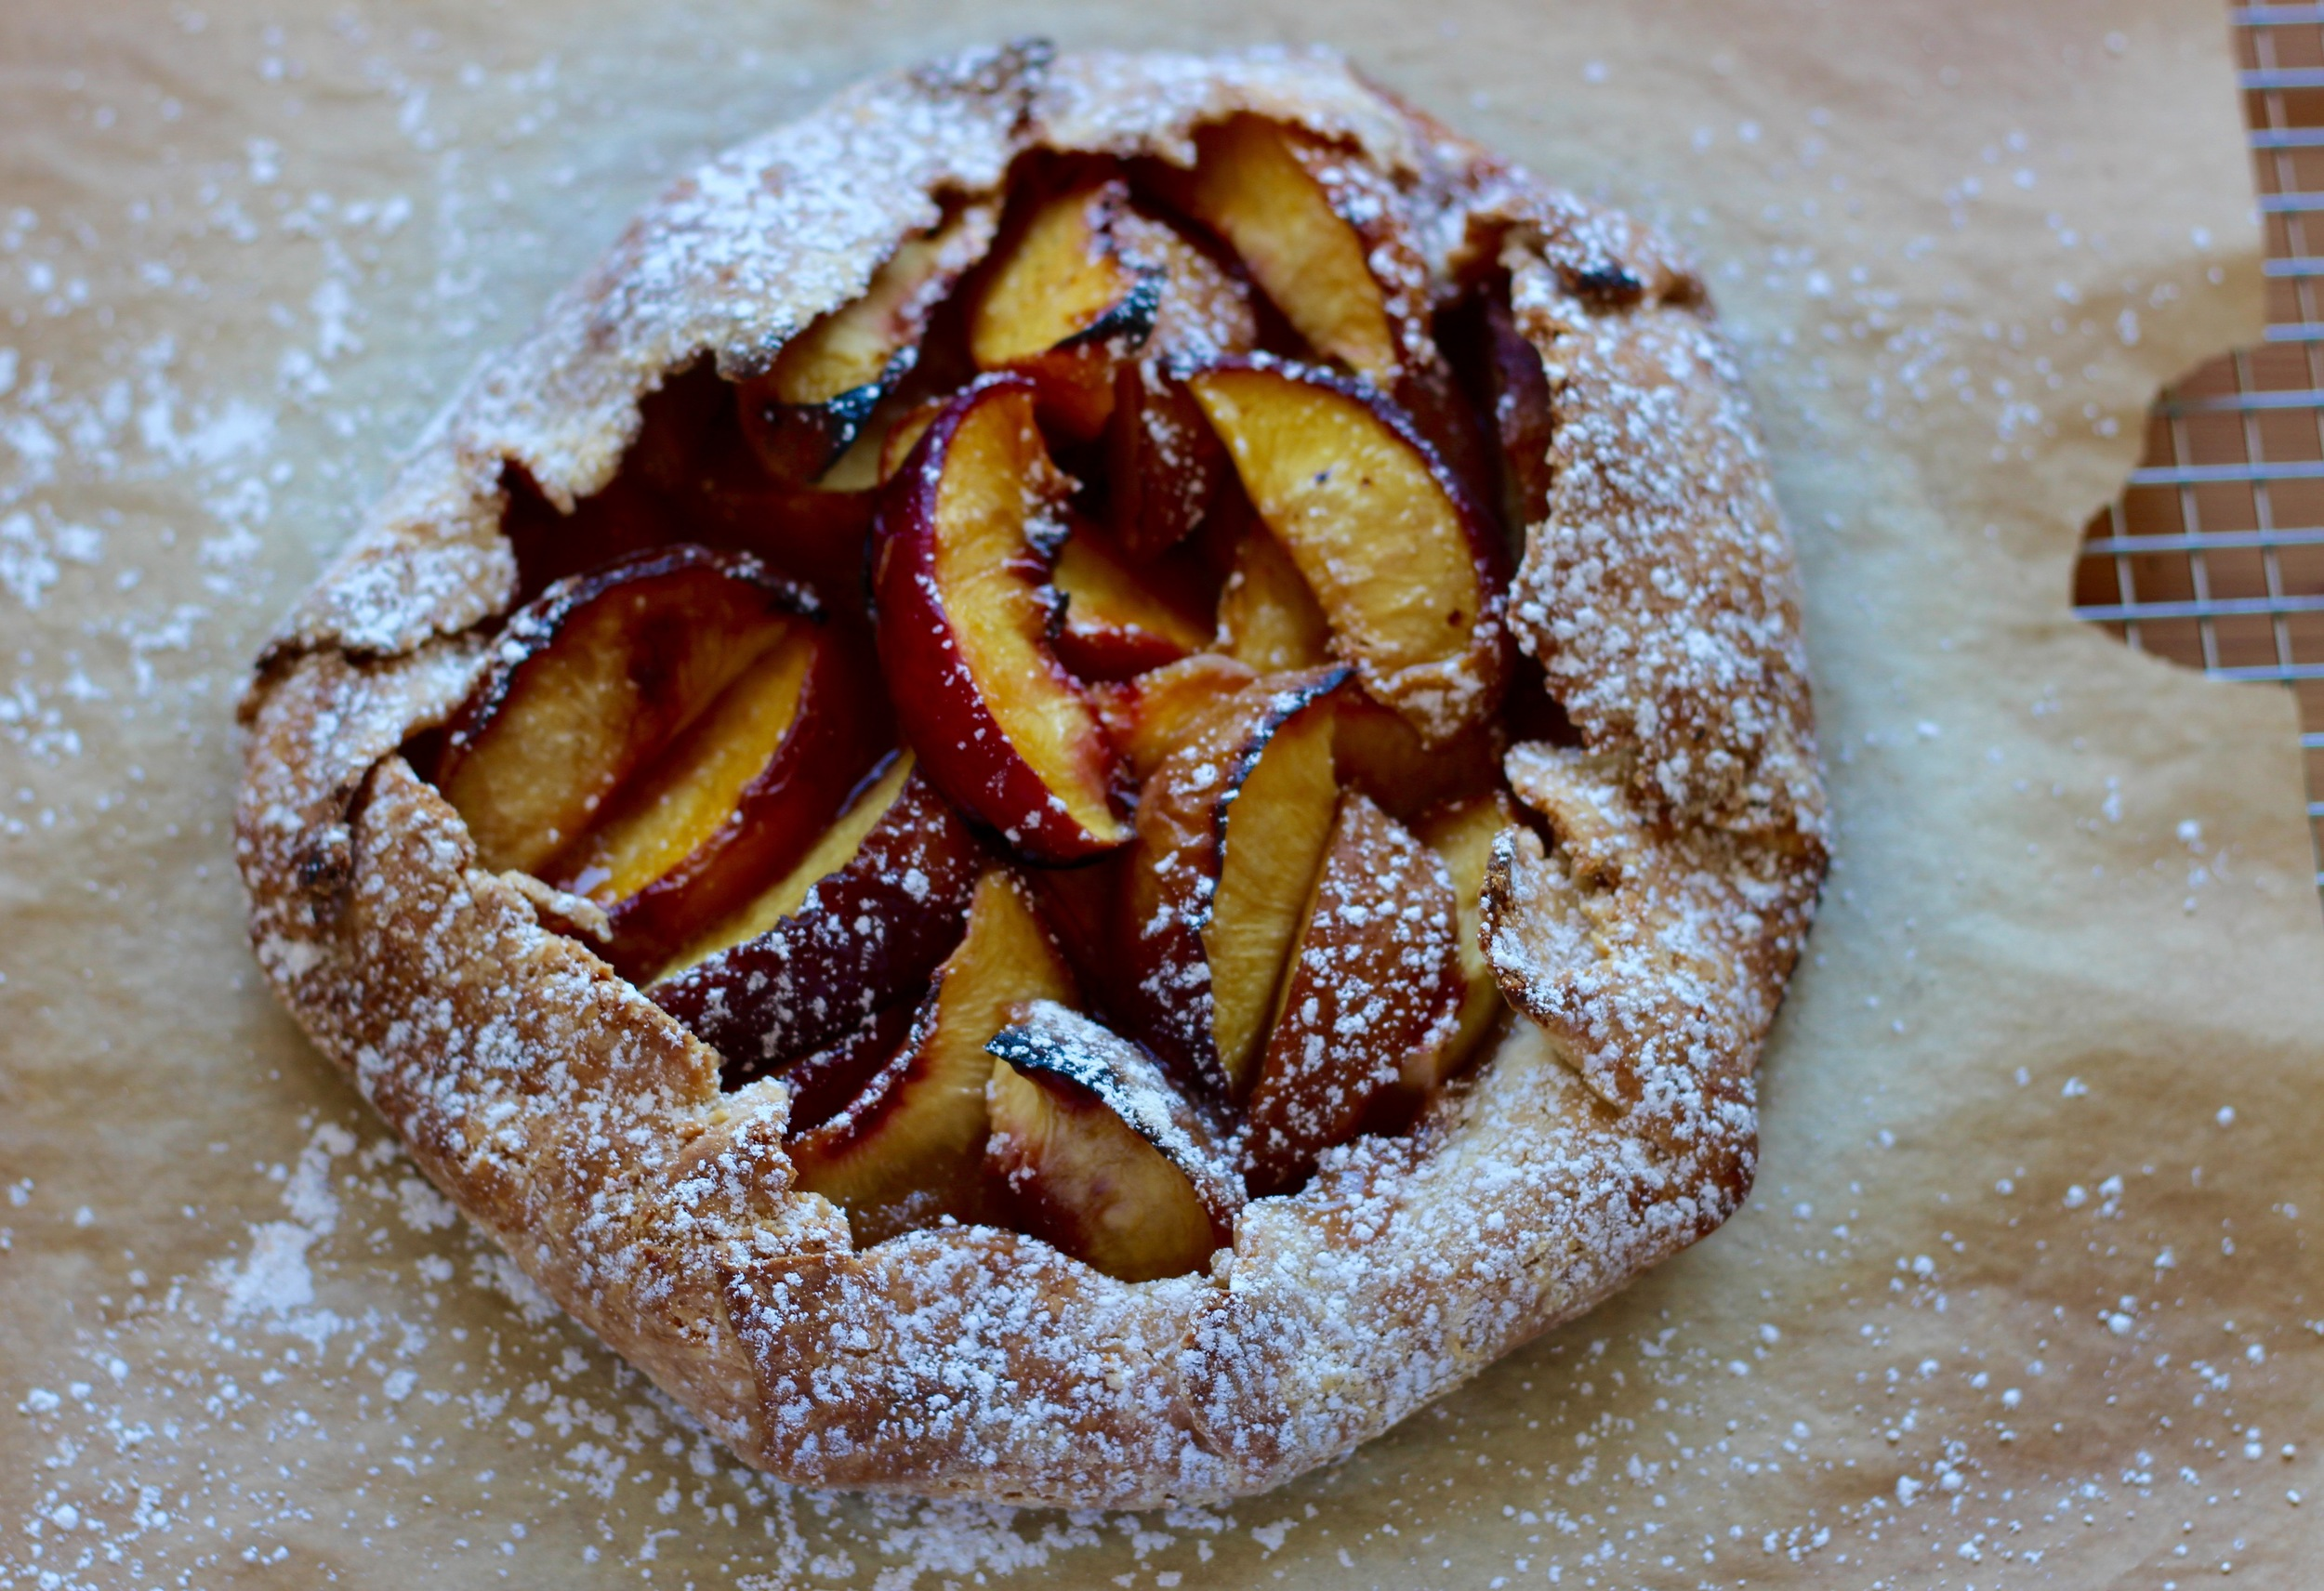 Our just-from-the-oven peach crostata is freshly dusted with powdered sugar. This recipe is great with apricots, berries, and plums too! Recipe at ThreadandWhisk.com.